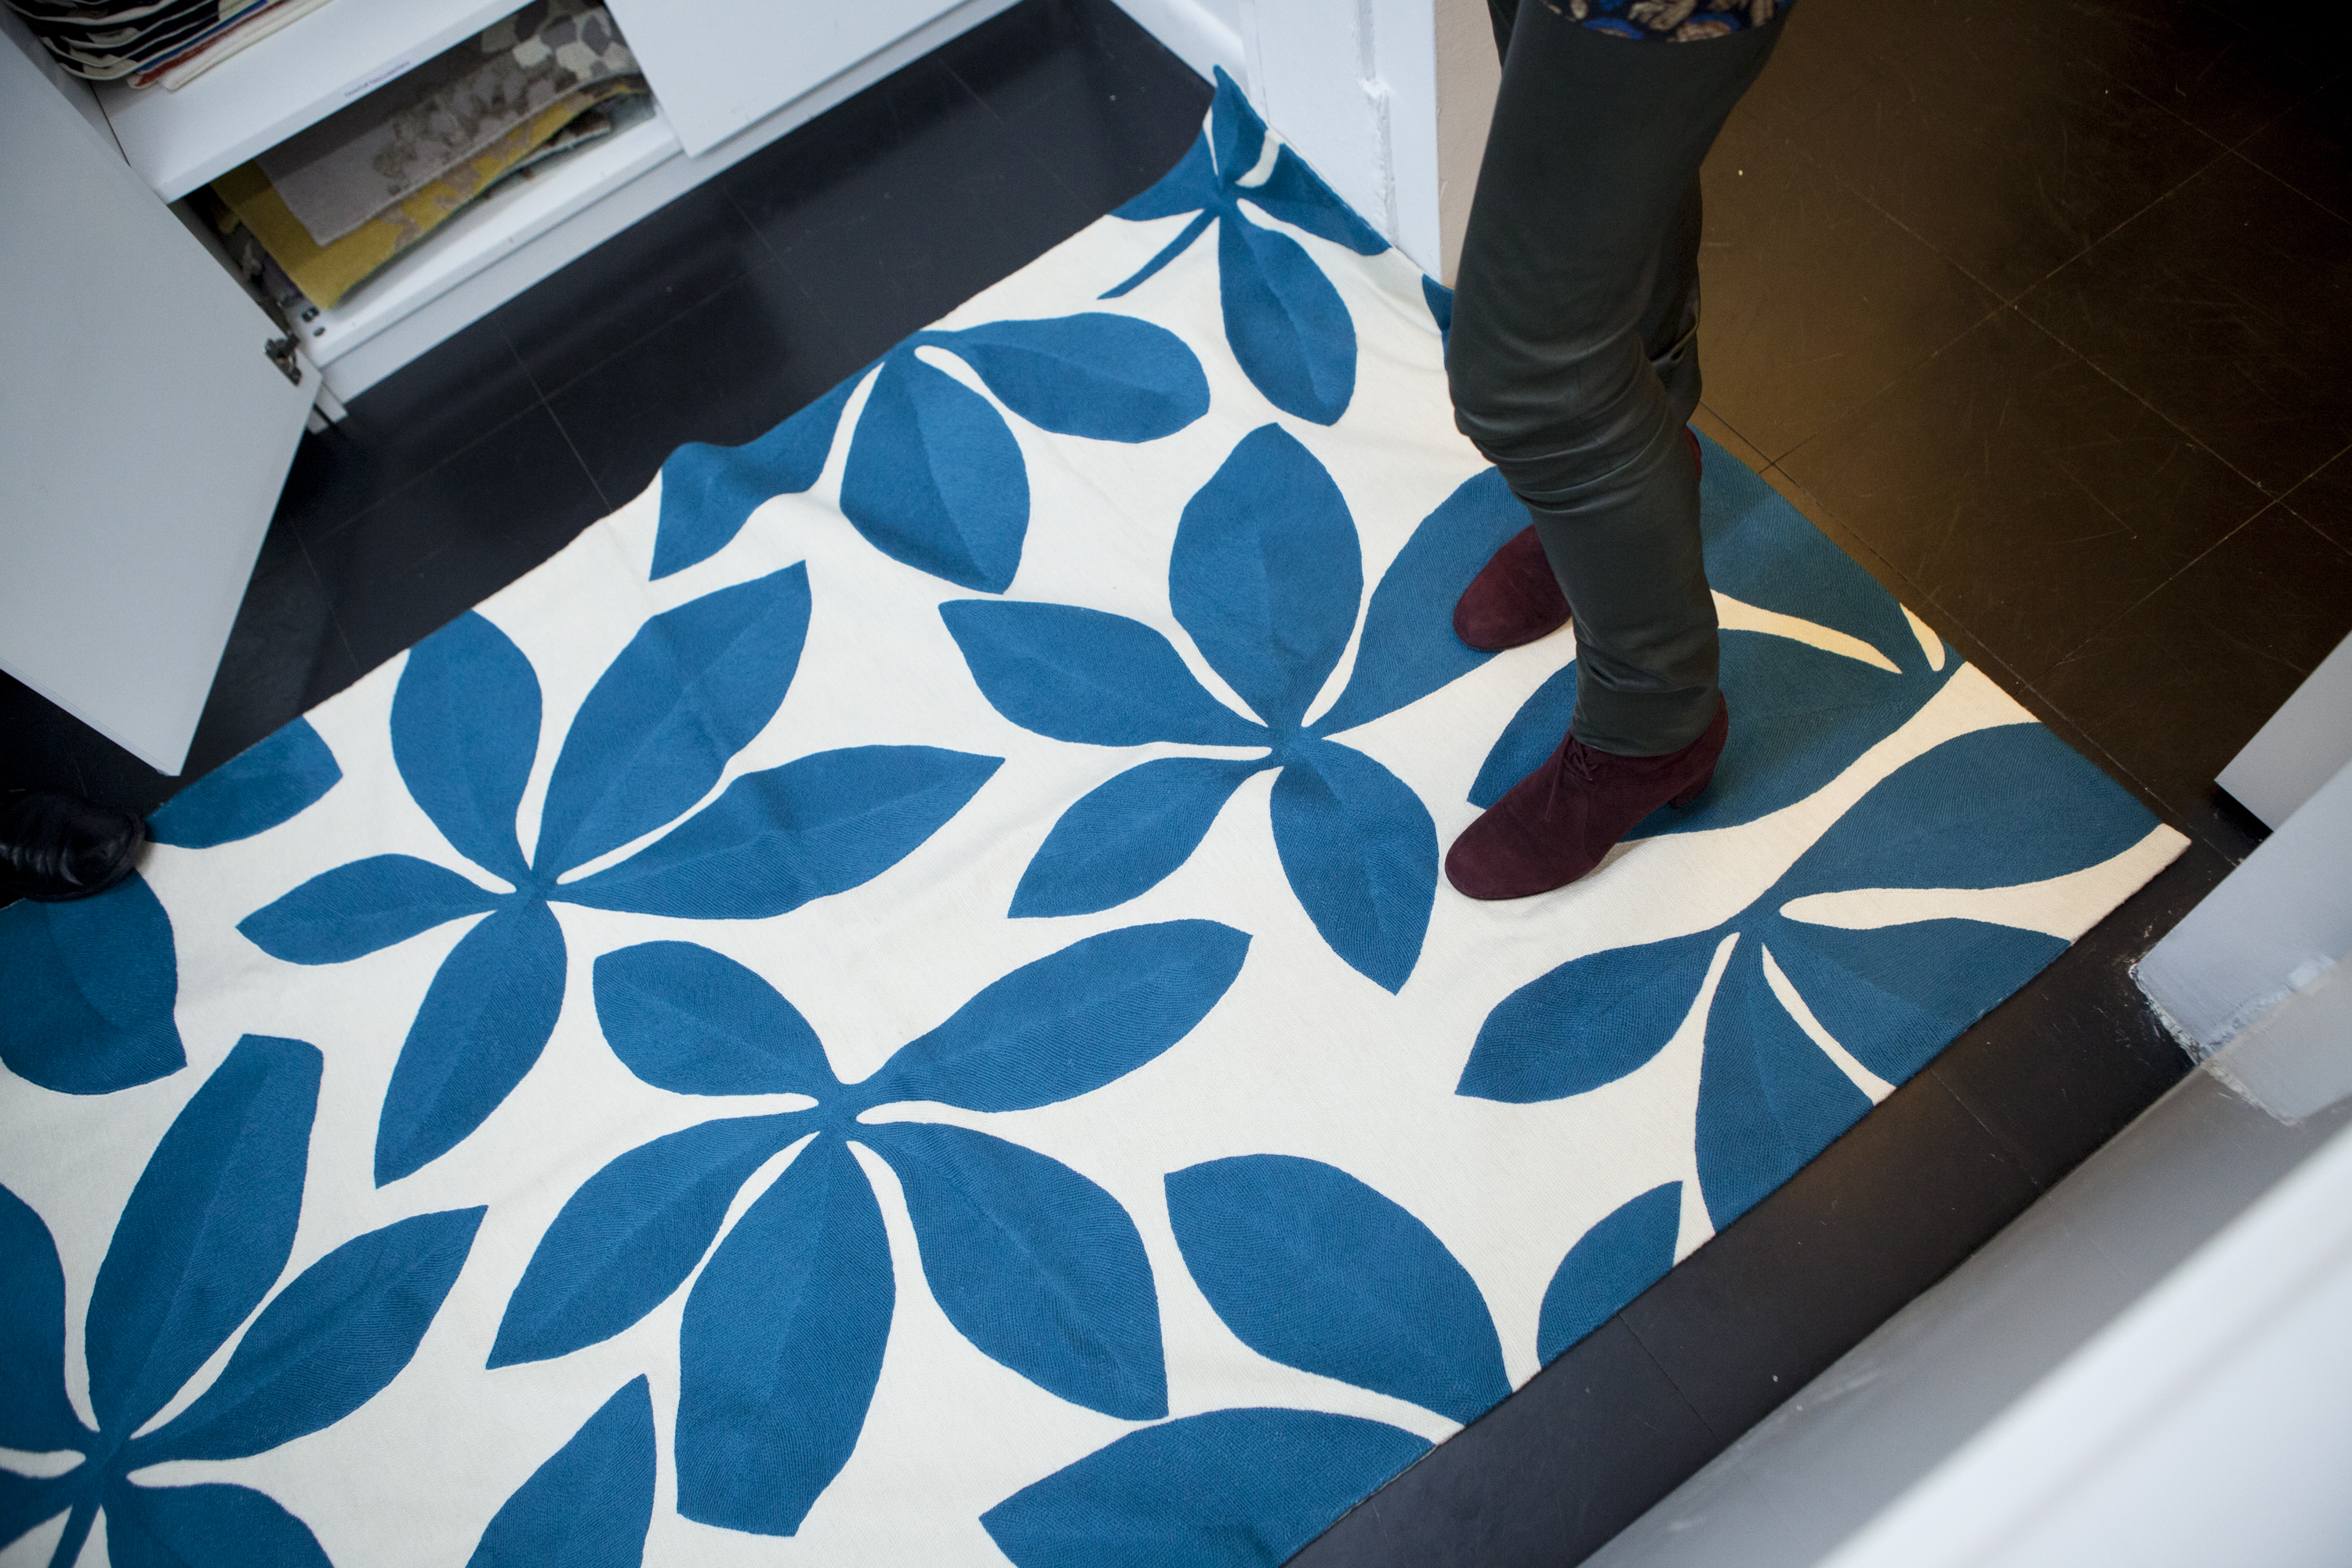 A hand-knotted rug in a vibrant and bold print